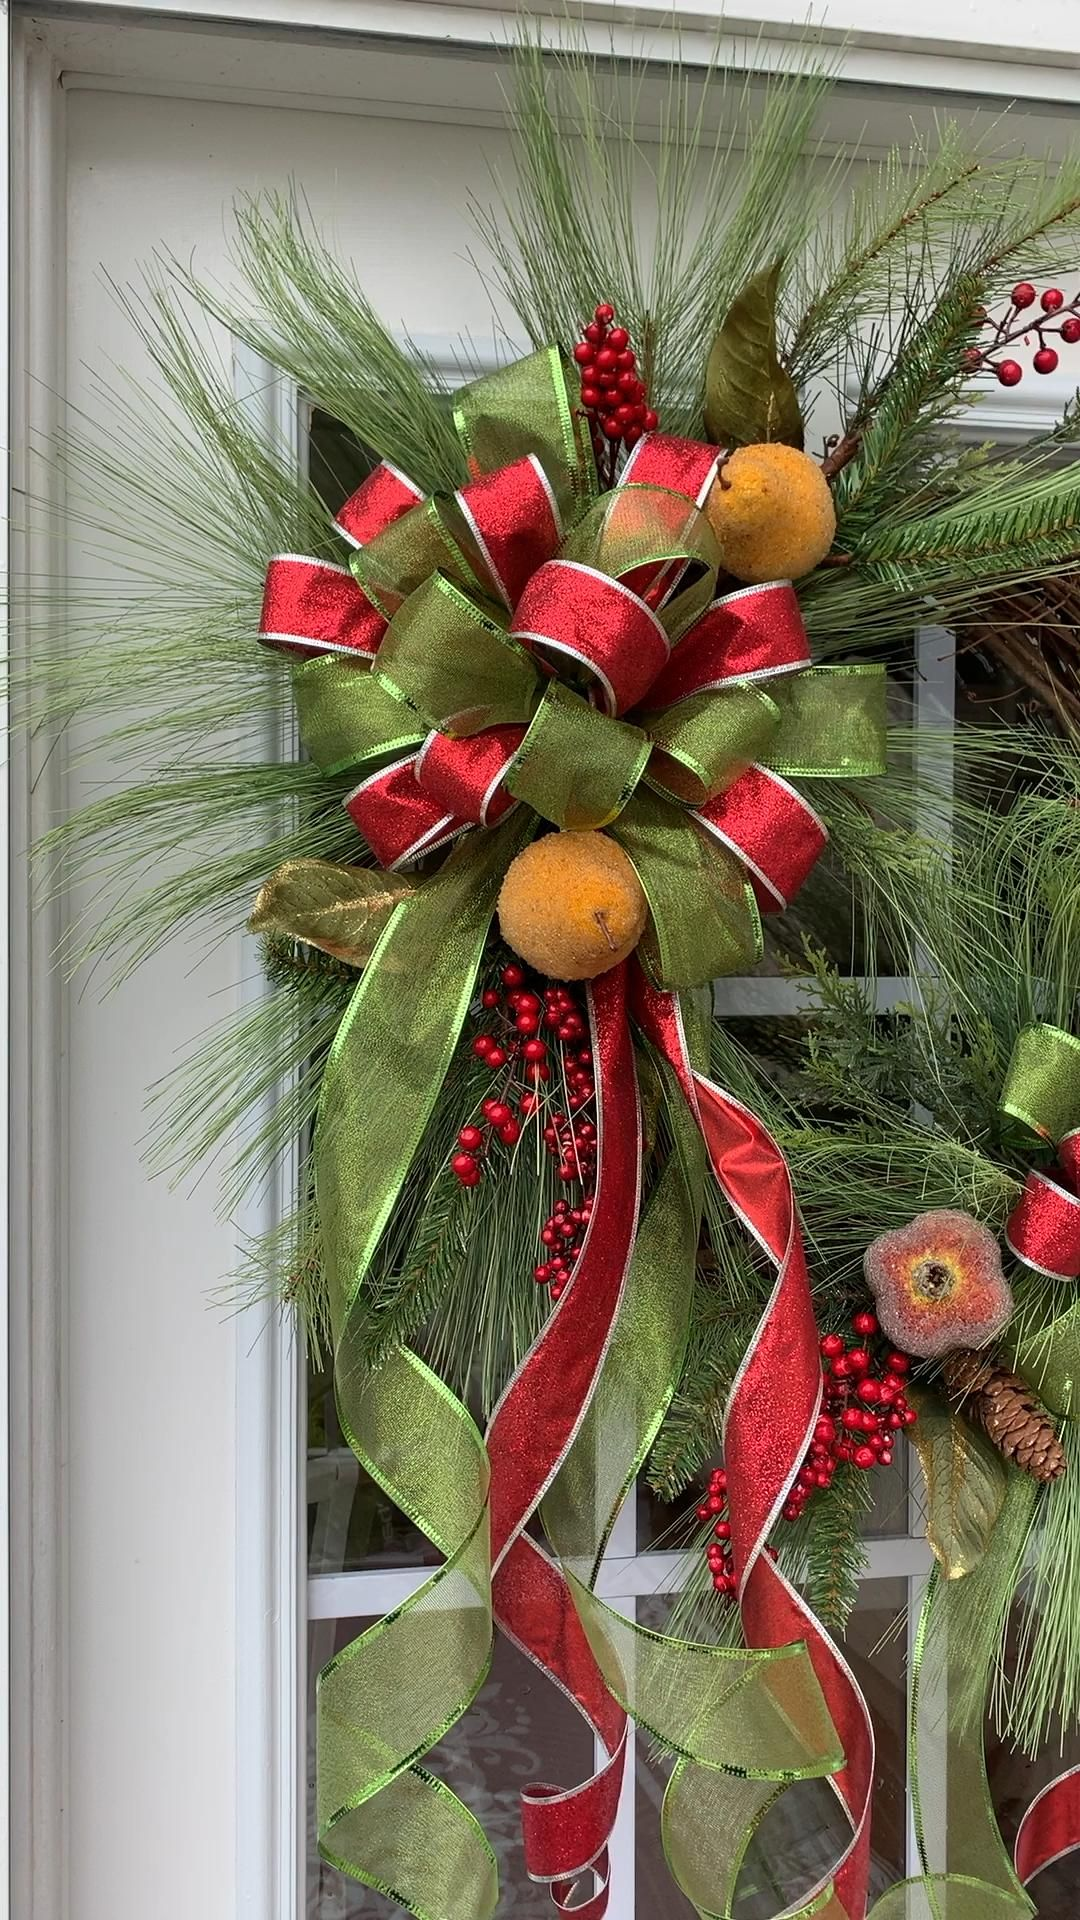 this pine Christmas wreath, has gorgeous wispy pine with Pomegranate's and Pears. This green and red Christmas wreath will look perfect on any front door. The perfect way to greet your guests this Christmas.